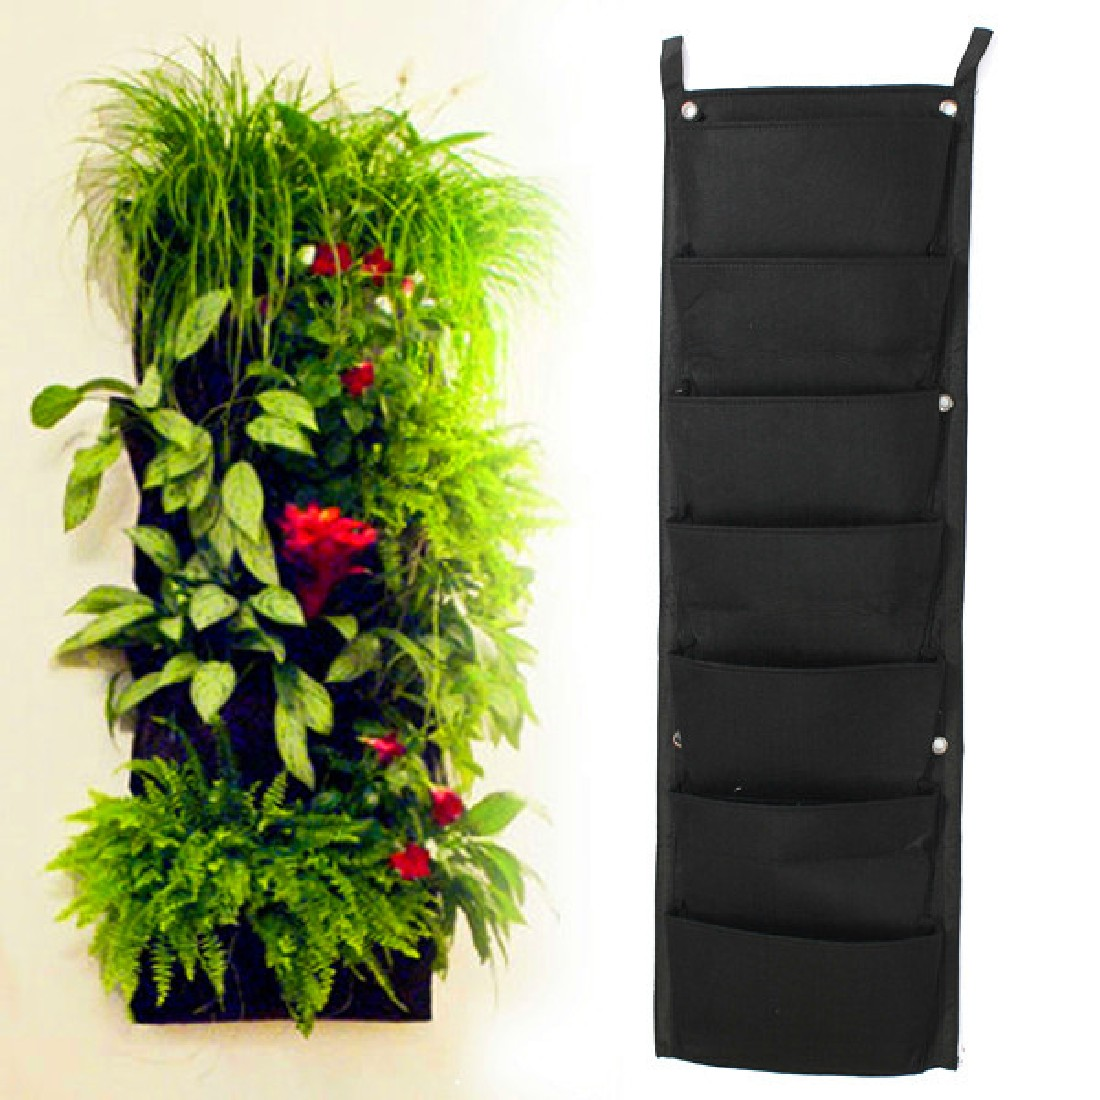 New 7 Pocket NEW Felt 1PC Outdoor Vertical Gardening Flower Pots And Planter  Hanging Pots